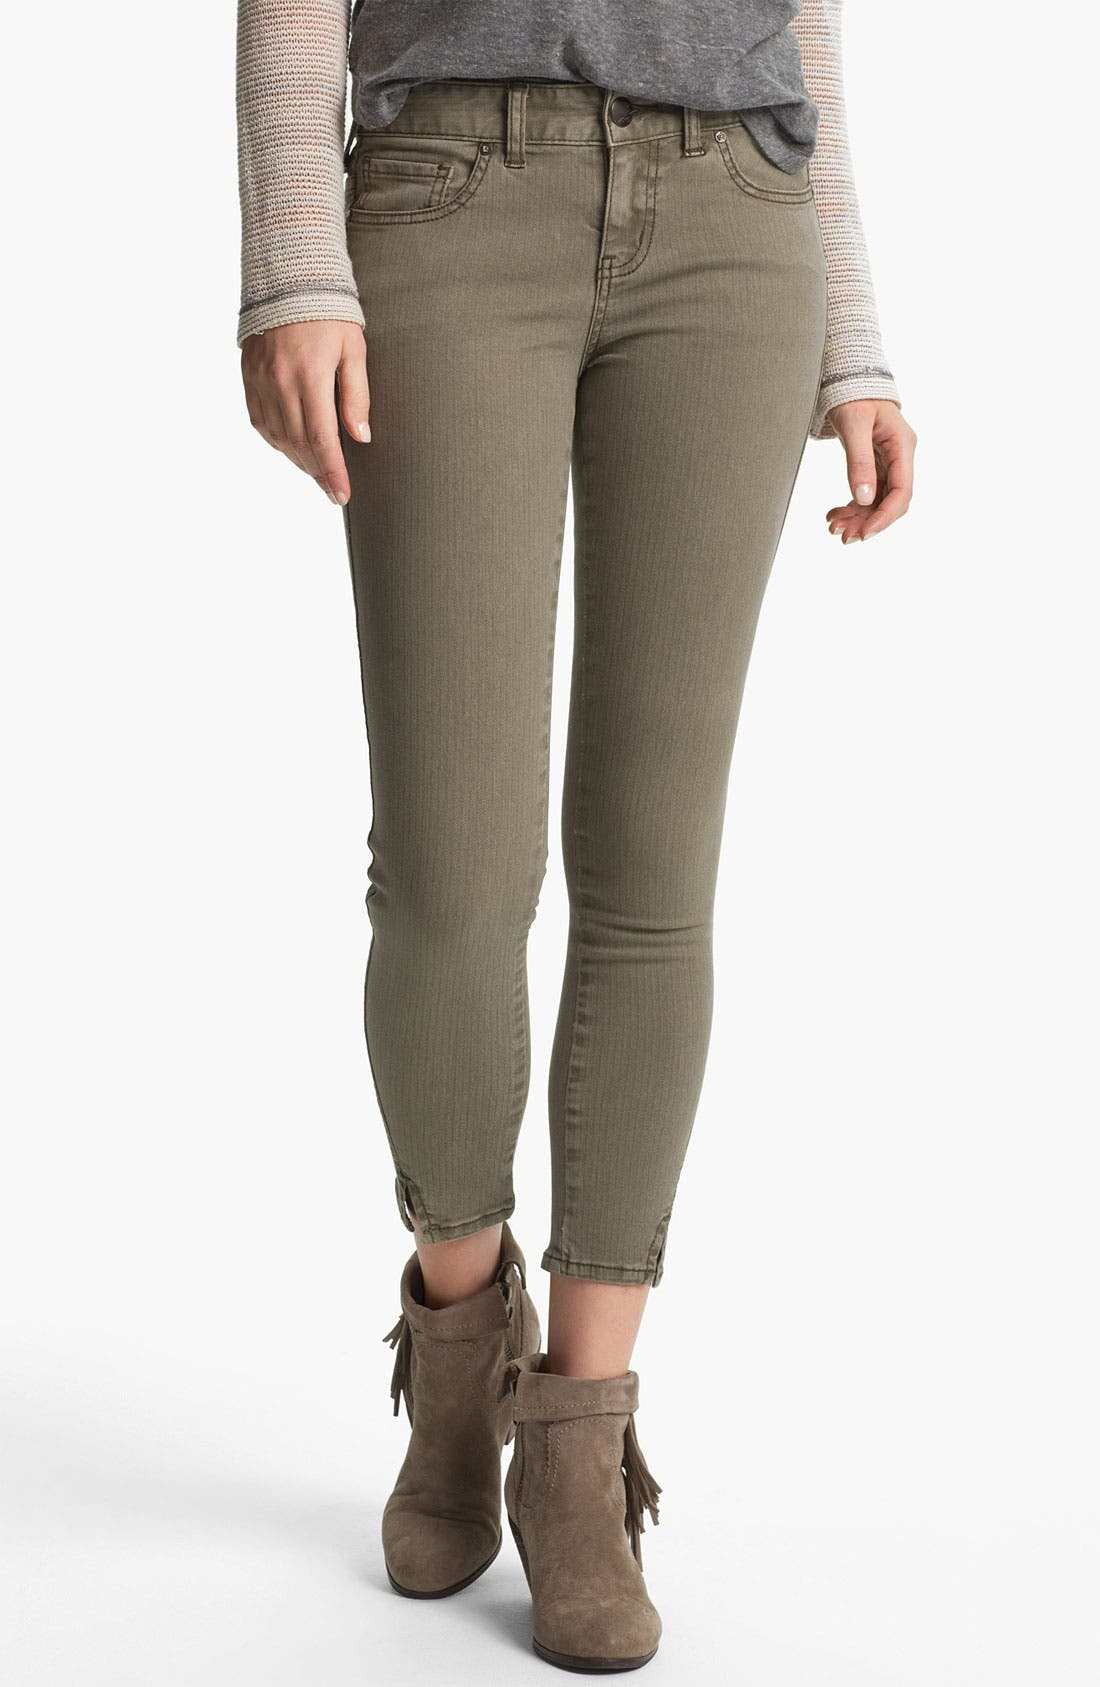 Alternate Image 1 Selected - Free People Crop Stretch Denim Skinny Jeans (Mountain Olive)